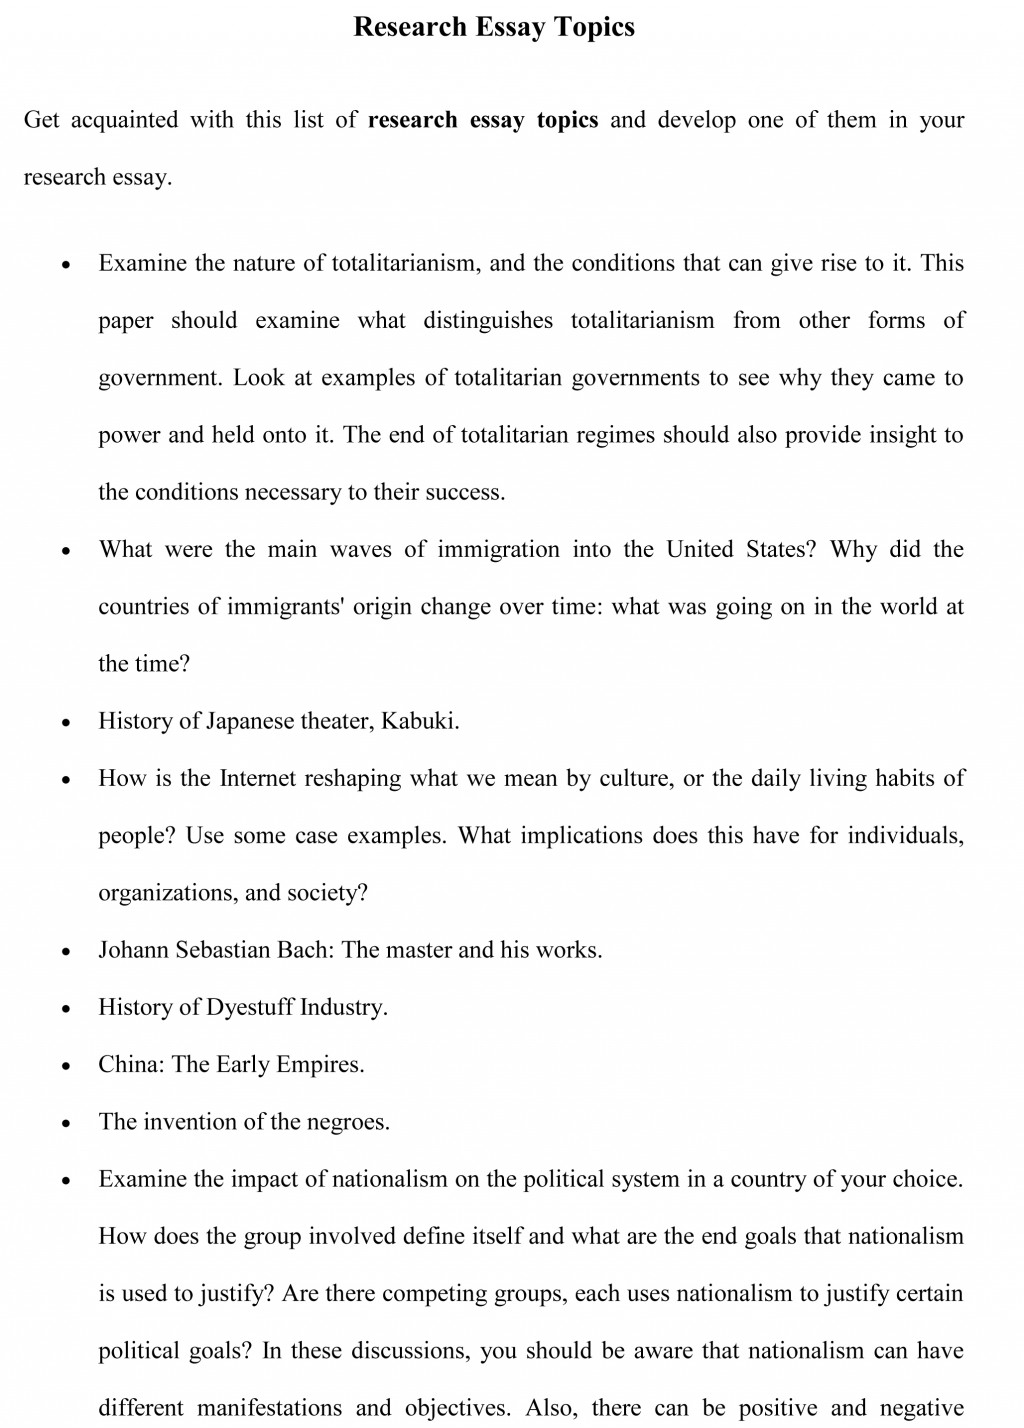 004 Research Paper Topics About Business Essay Striking On Ethics Easy For Law Class Large